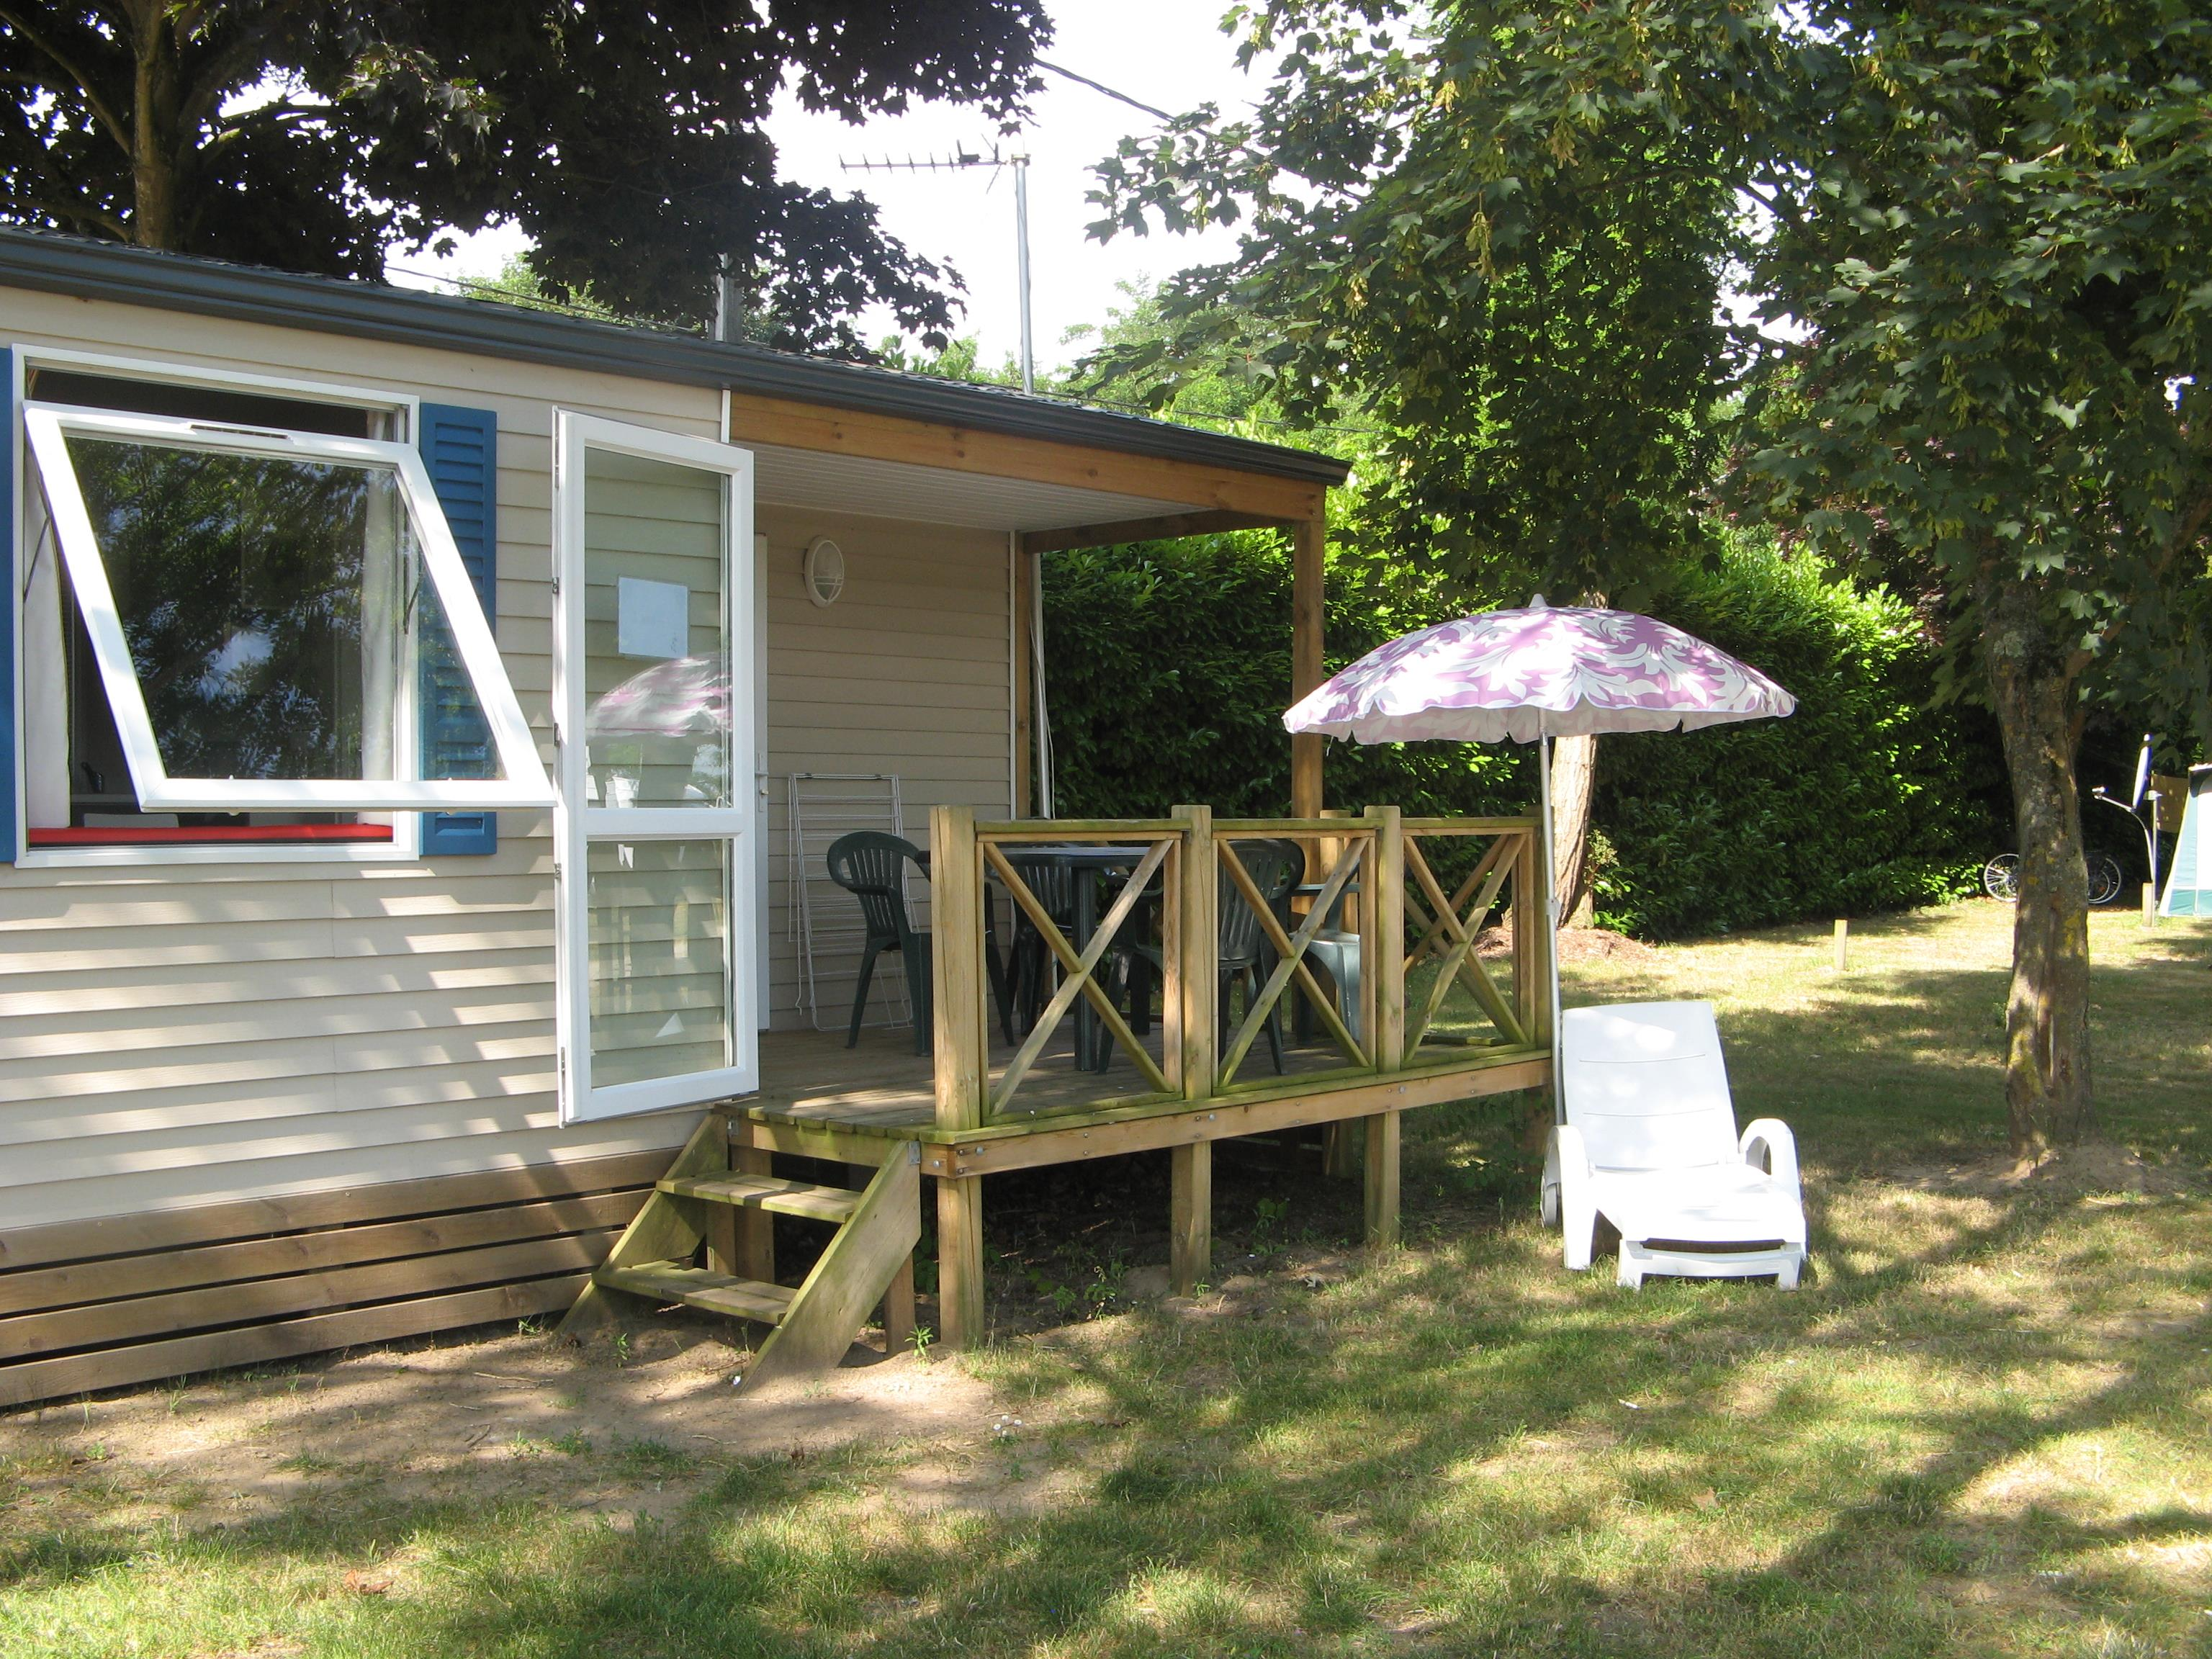 Mobile home  O' HARA 28 m² / 2 bedrooms - Terrasse